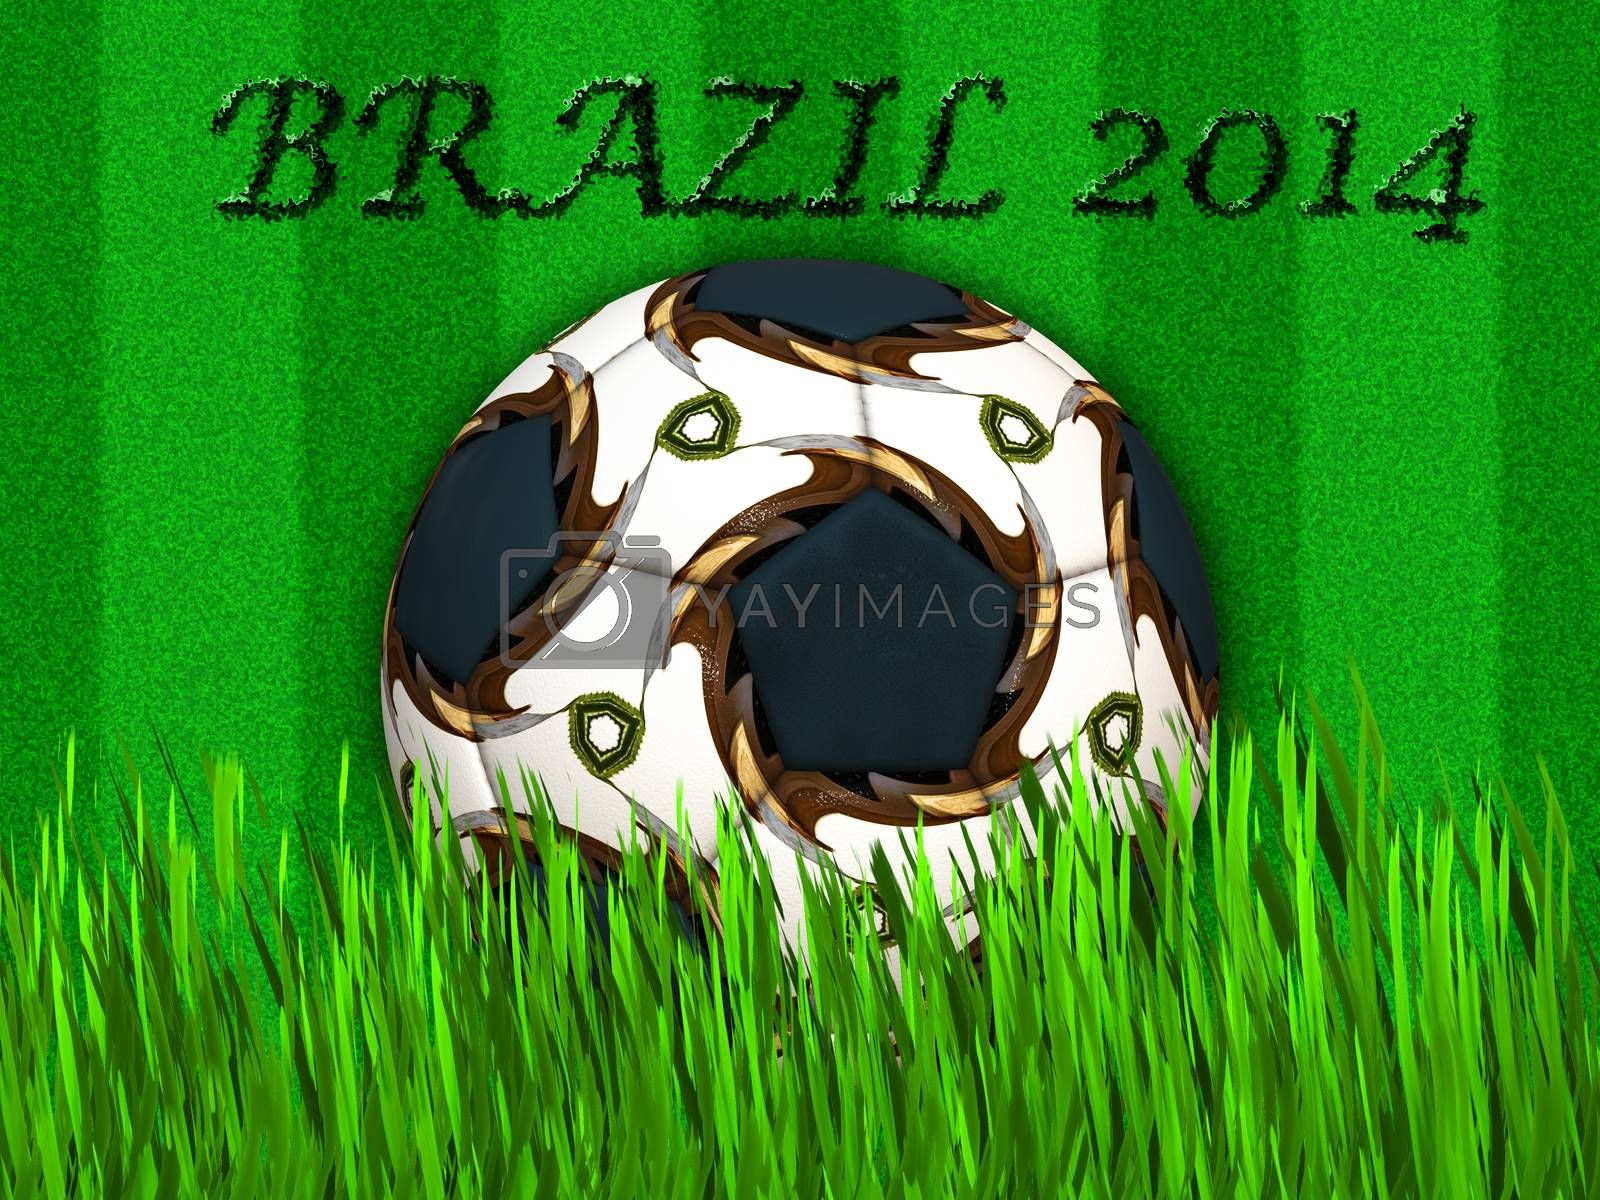 FIFA World cup - Brazil 2014 soccer ball by ankarb